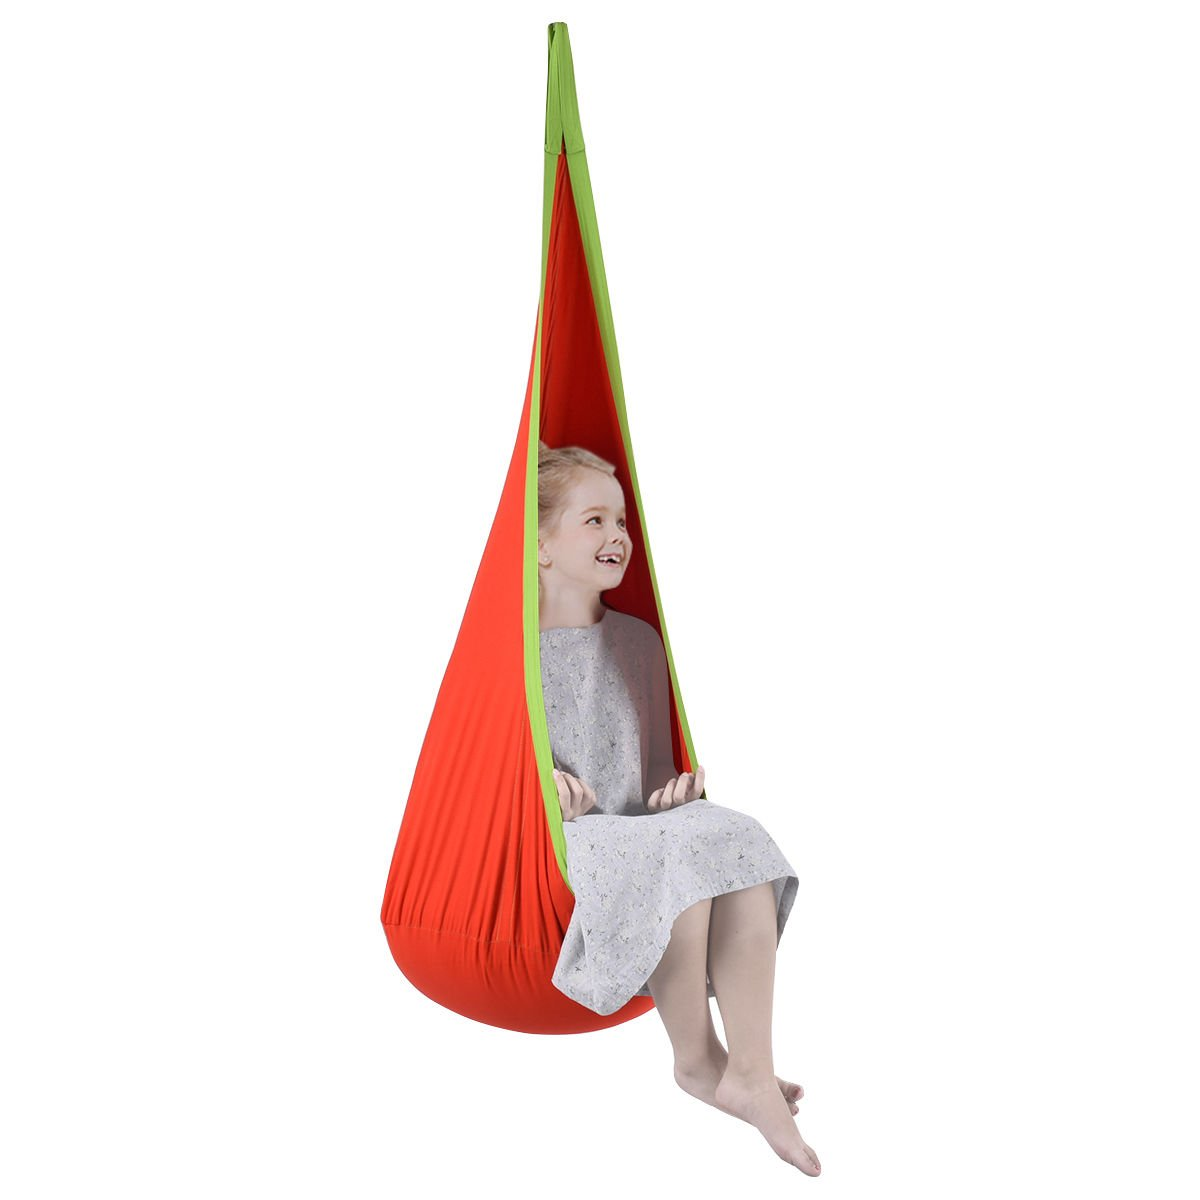 K&A Company Swing Seat Hanging Hammock Indoor Outdoor Child Tent Kids Chair Nook Pod Reading Travel Orange